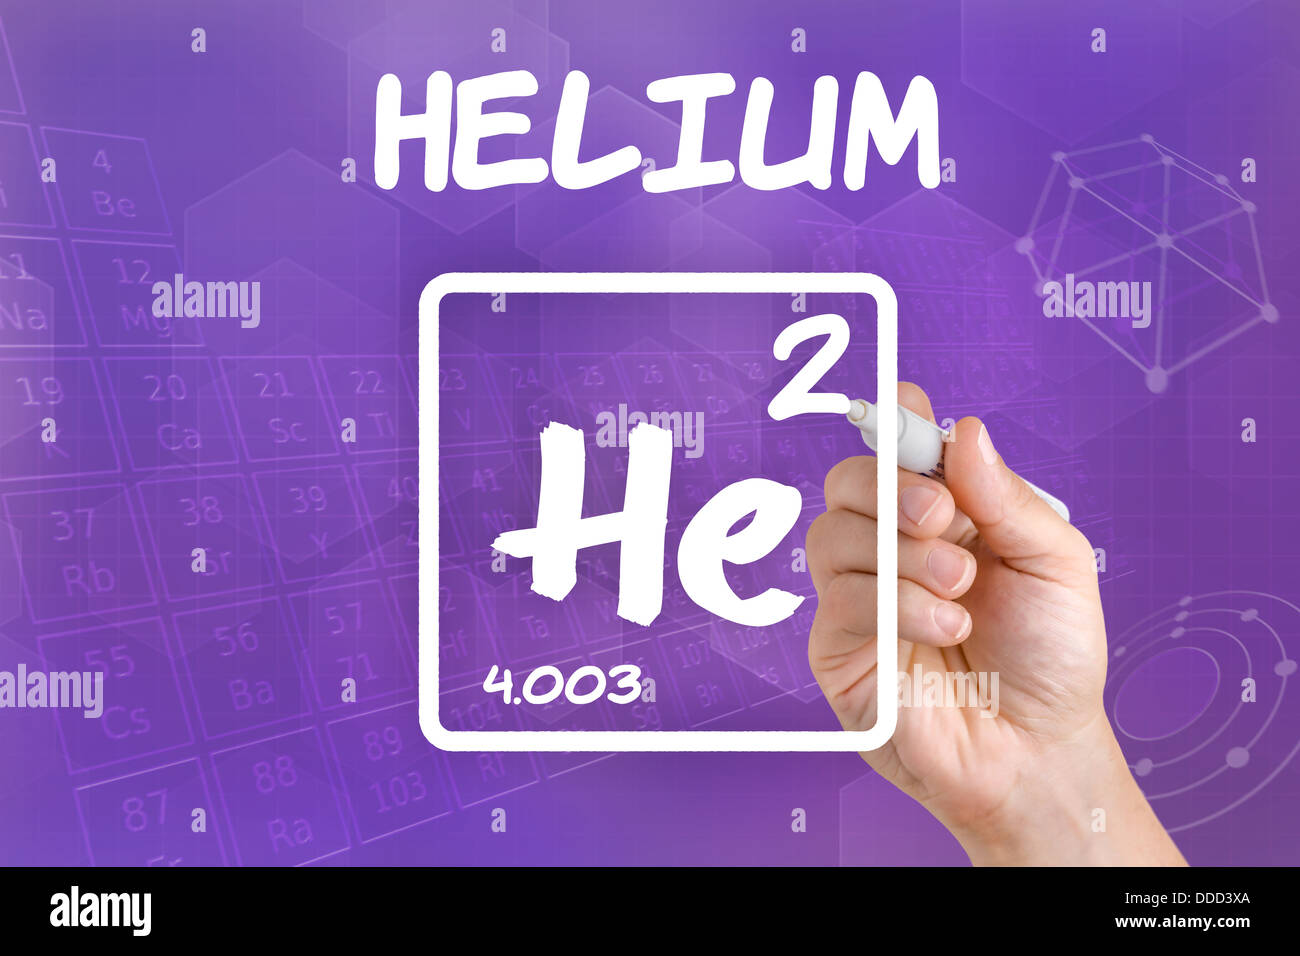 Symbol for the chemical element helium stock photo royalty free symbol for the chemical element helium buycottarizona